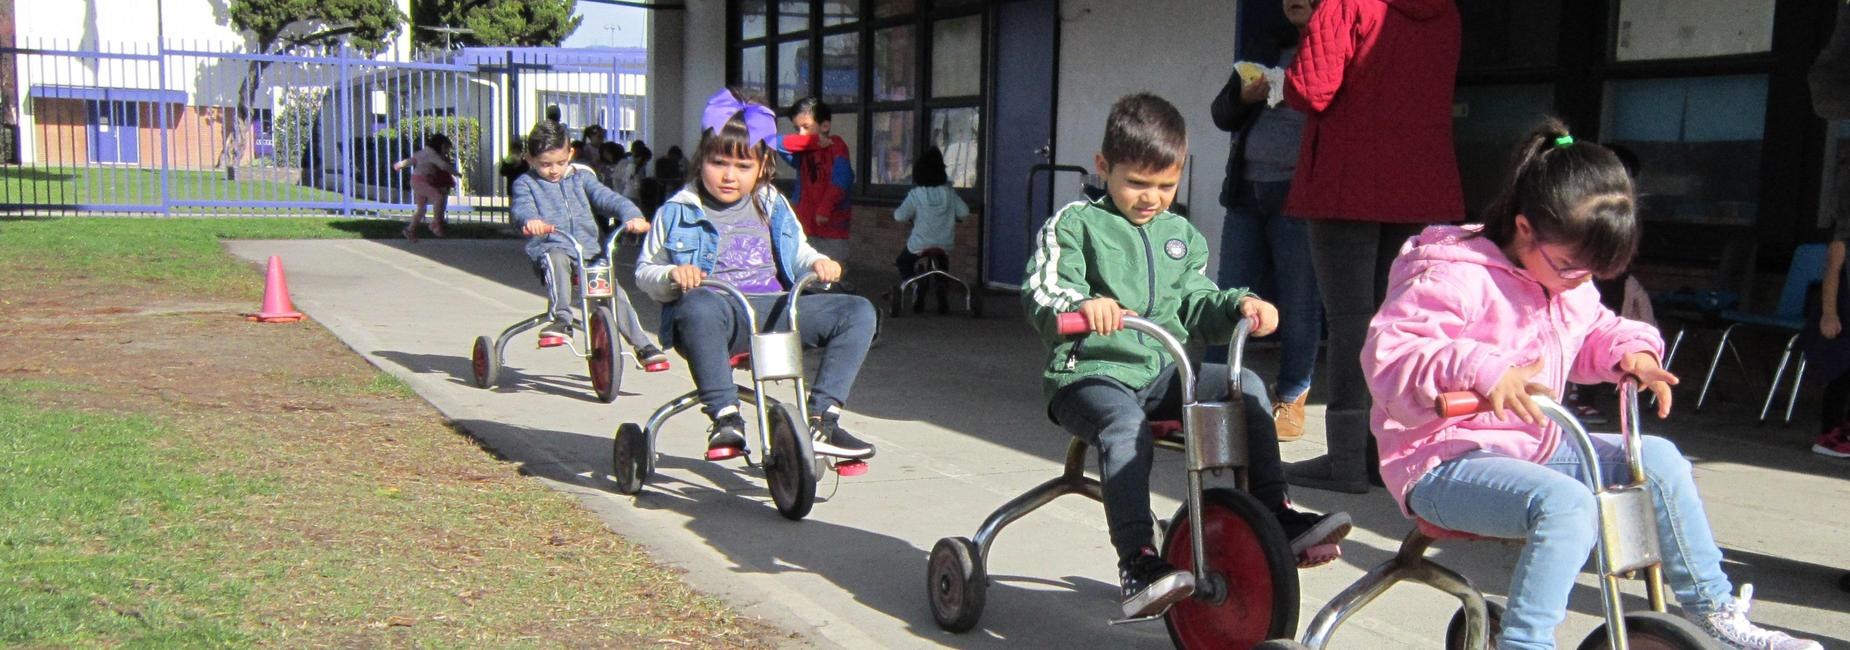 Students riding tricycles at recess.